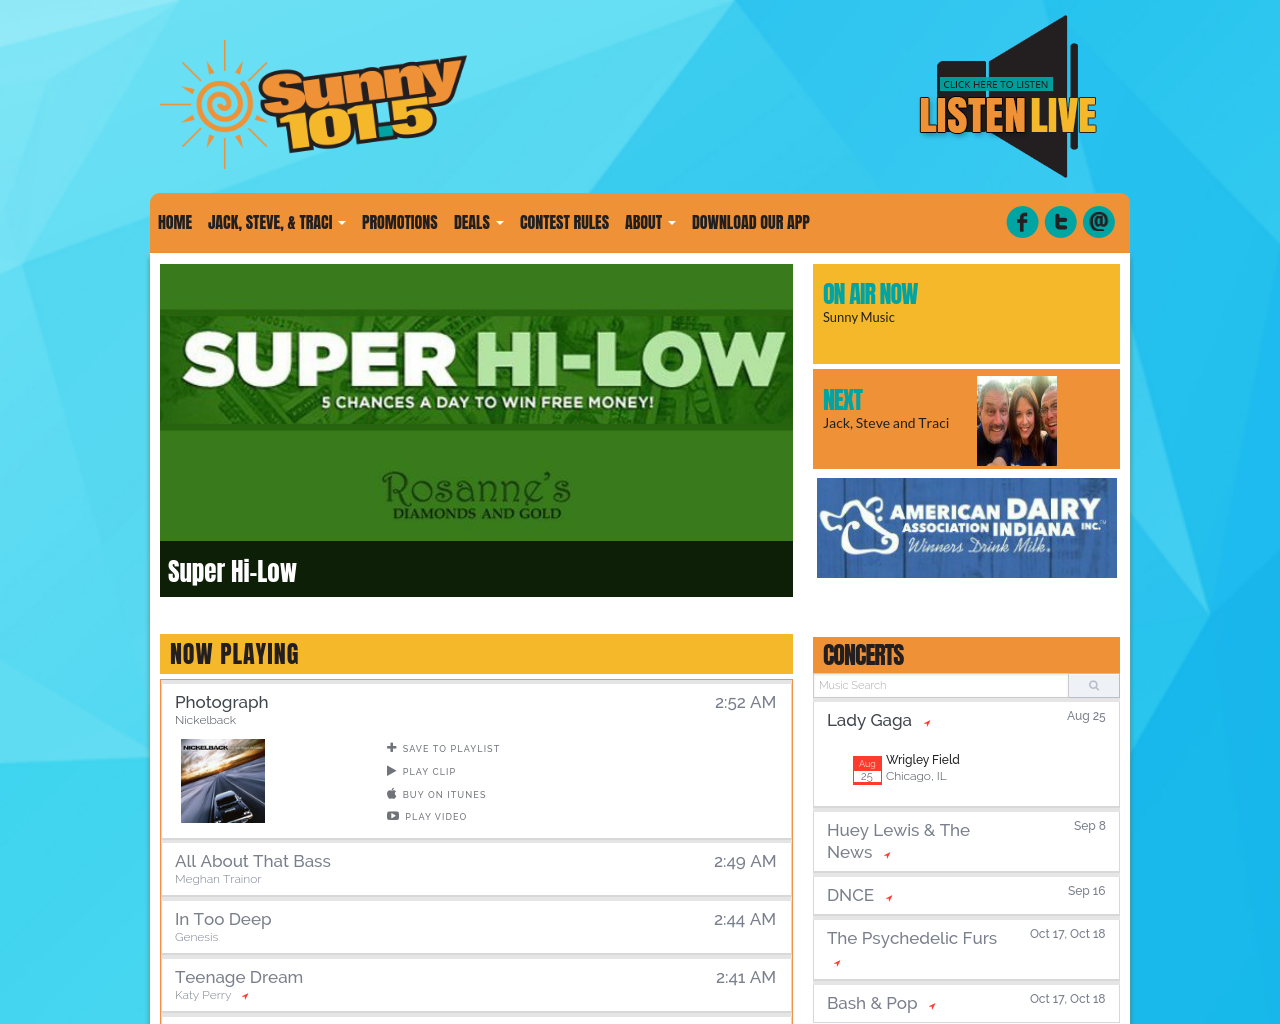 Sunny-101.5-FM-Advertising-Reviews-Pricing